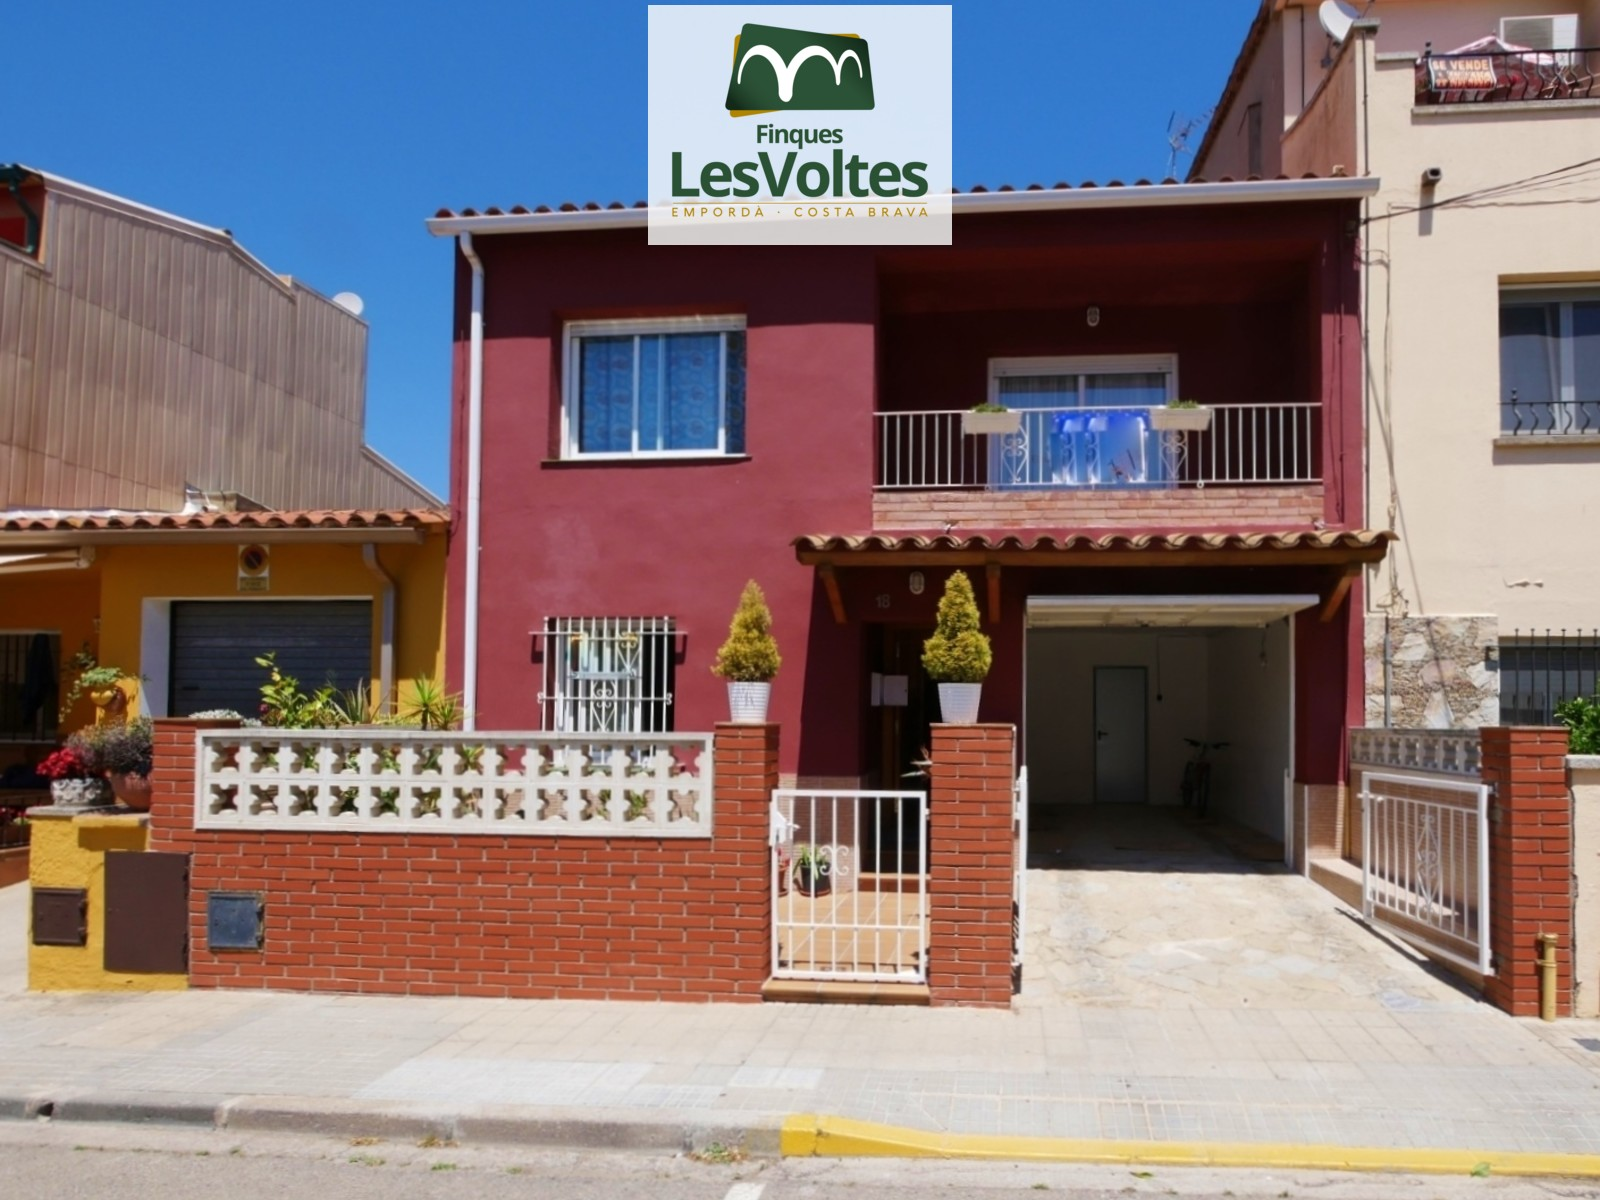 HOUSE OF 260M2 DISTRIBUTED IN TWO HOUSES FOR SALE IN PALAFRUGELL. LOCATED IN A QUIET AREA AND WELL COMMUNICATED.